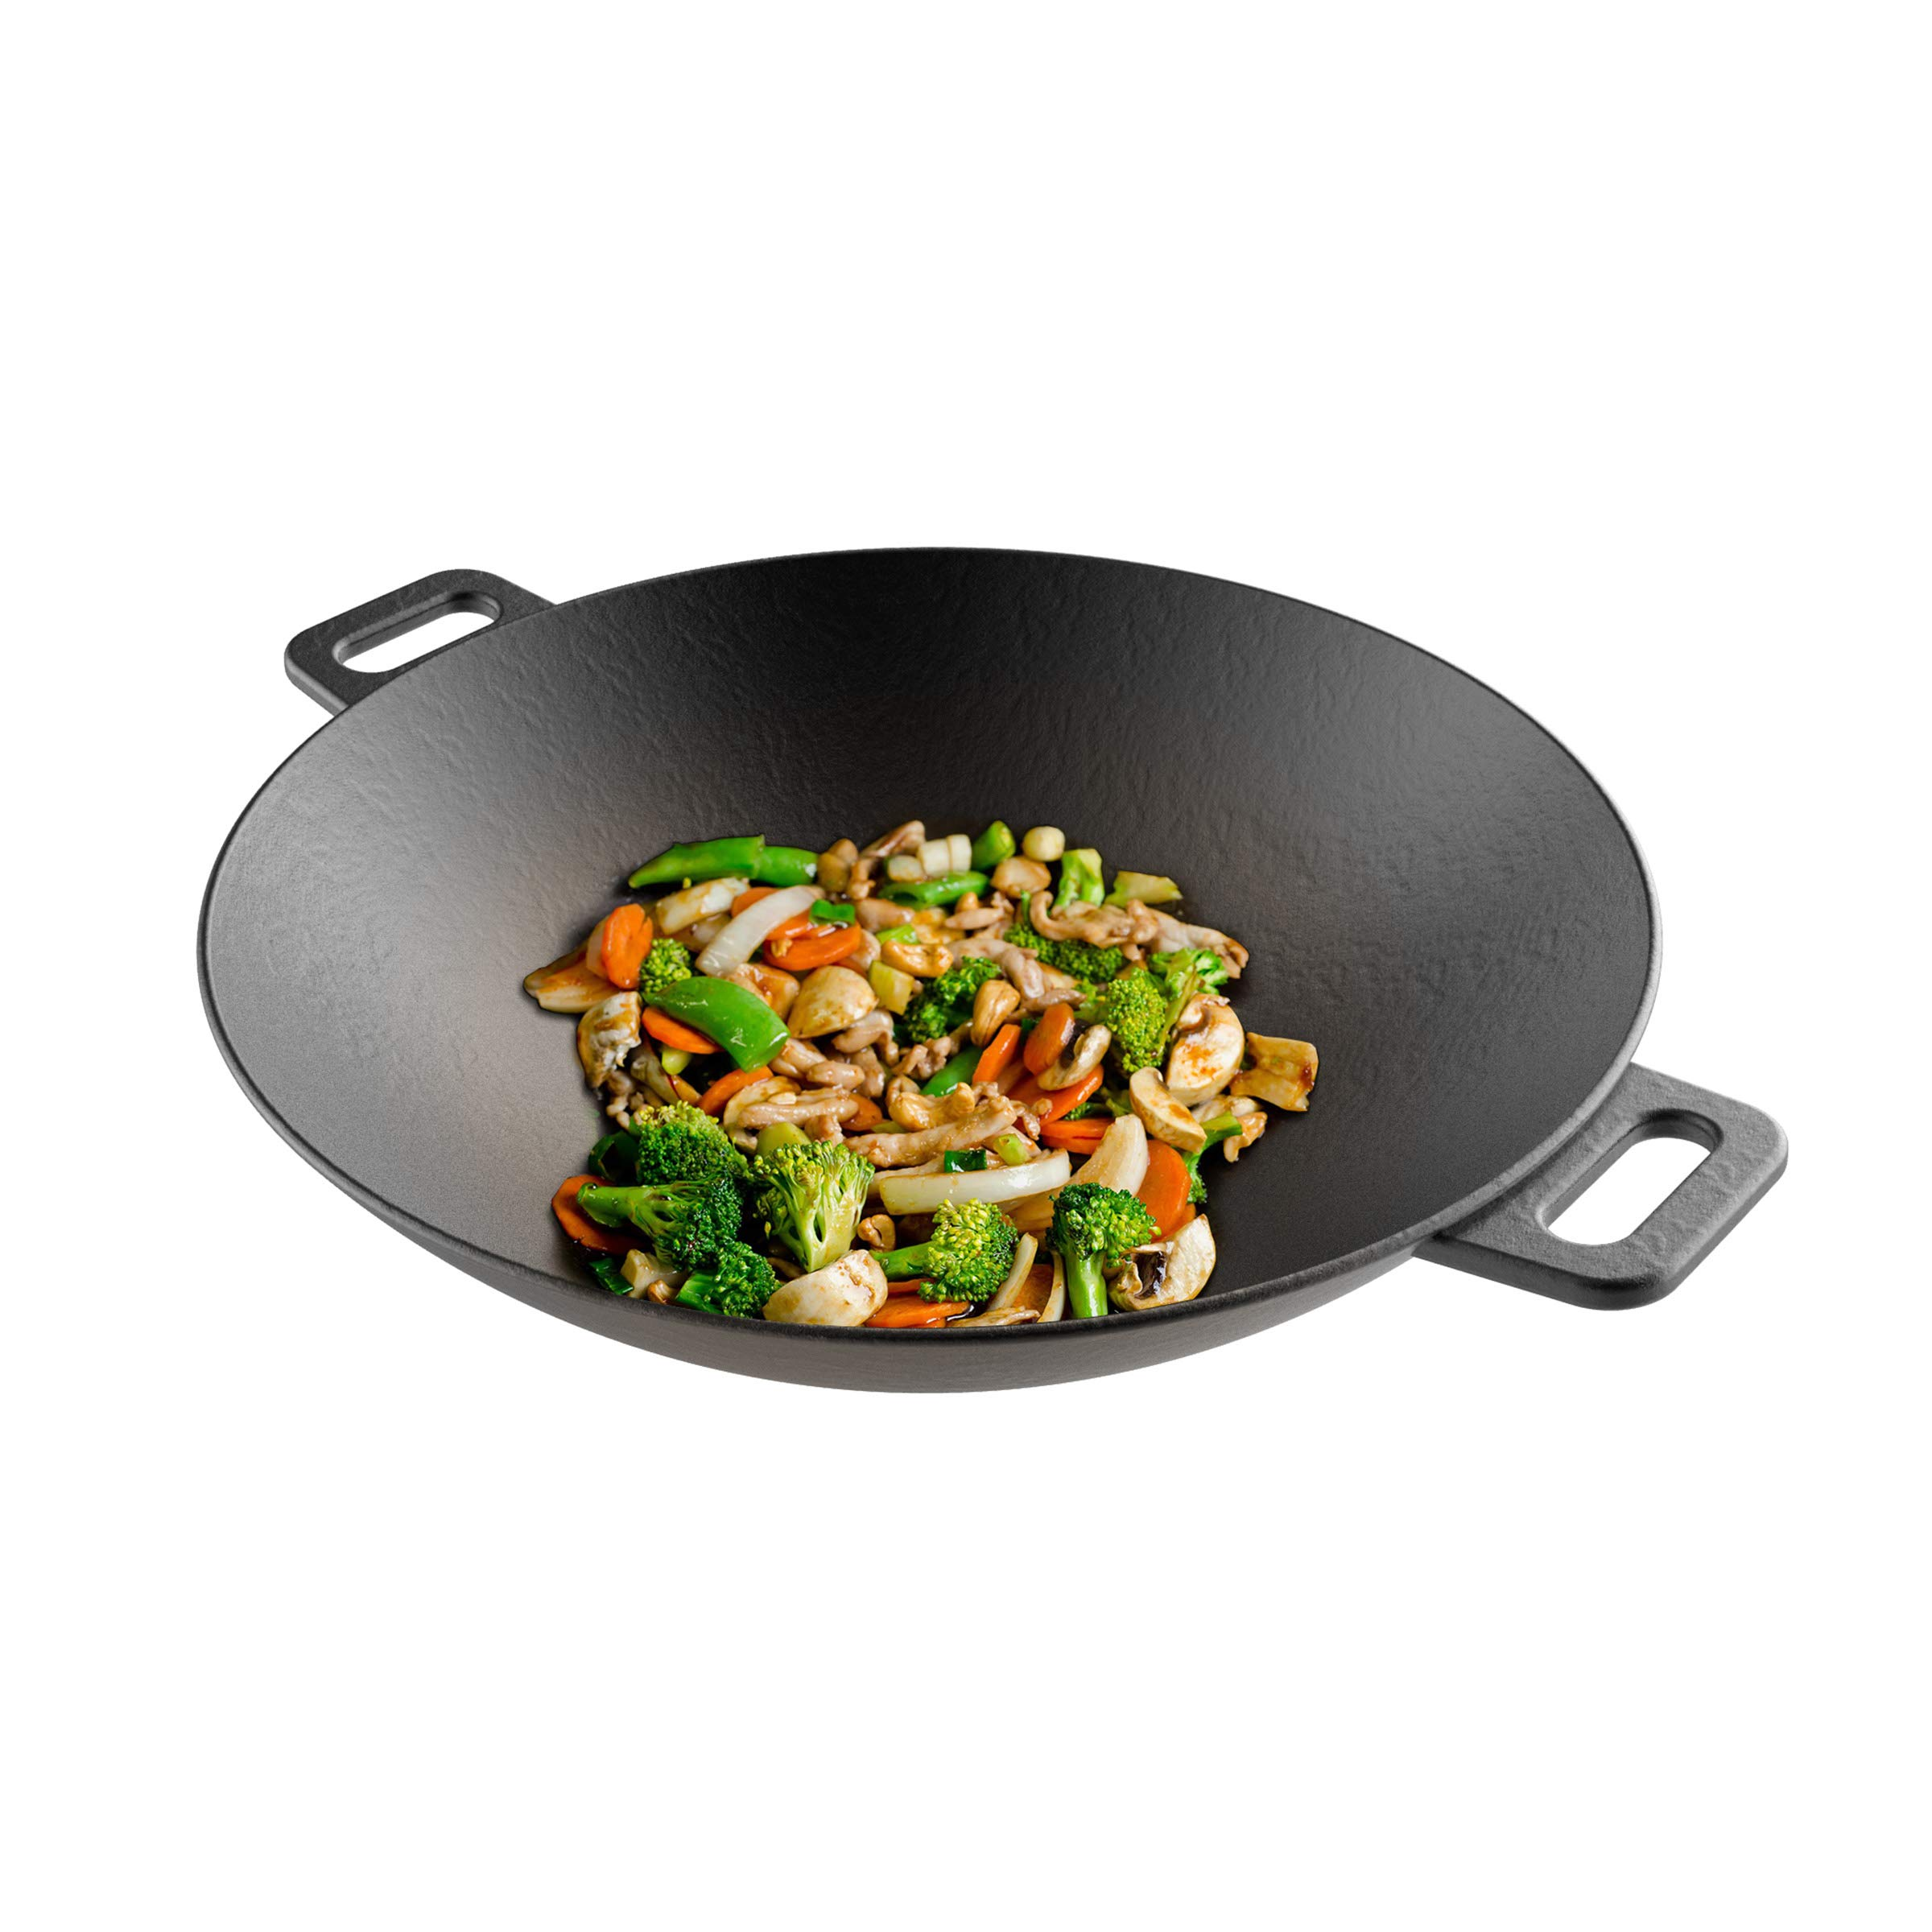 """Cast Iron Wok-14"""" Pre-Seasoned, Flat Bottom Cookware with Handles-Compatible with Stovetop, Oven, Induction, Grill, or Campfire by Classic Cuisine"""